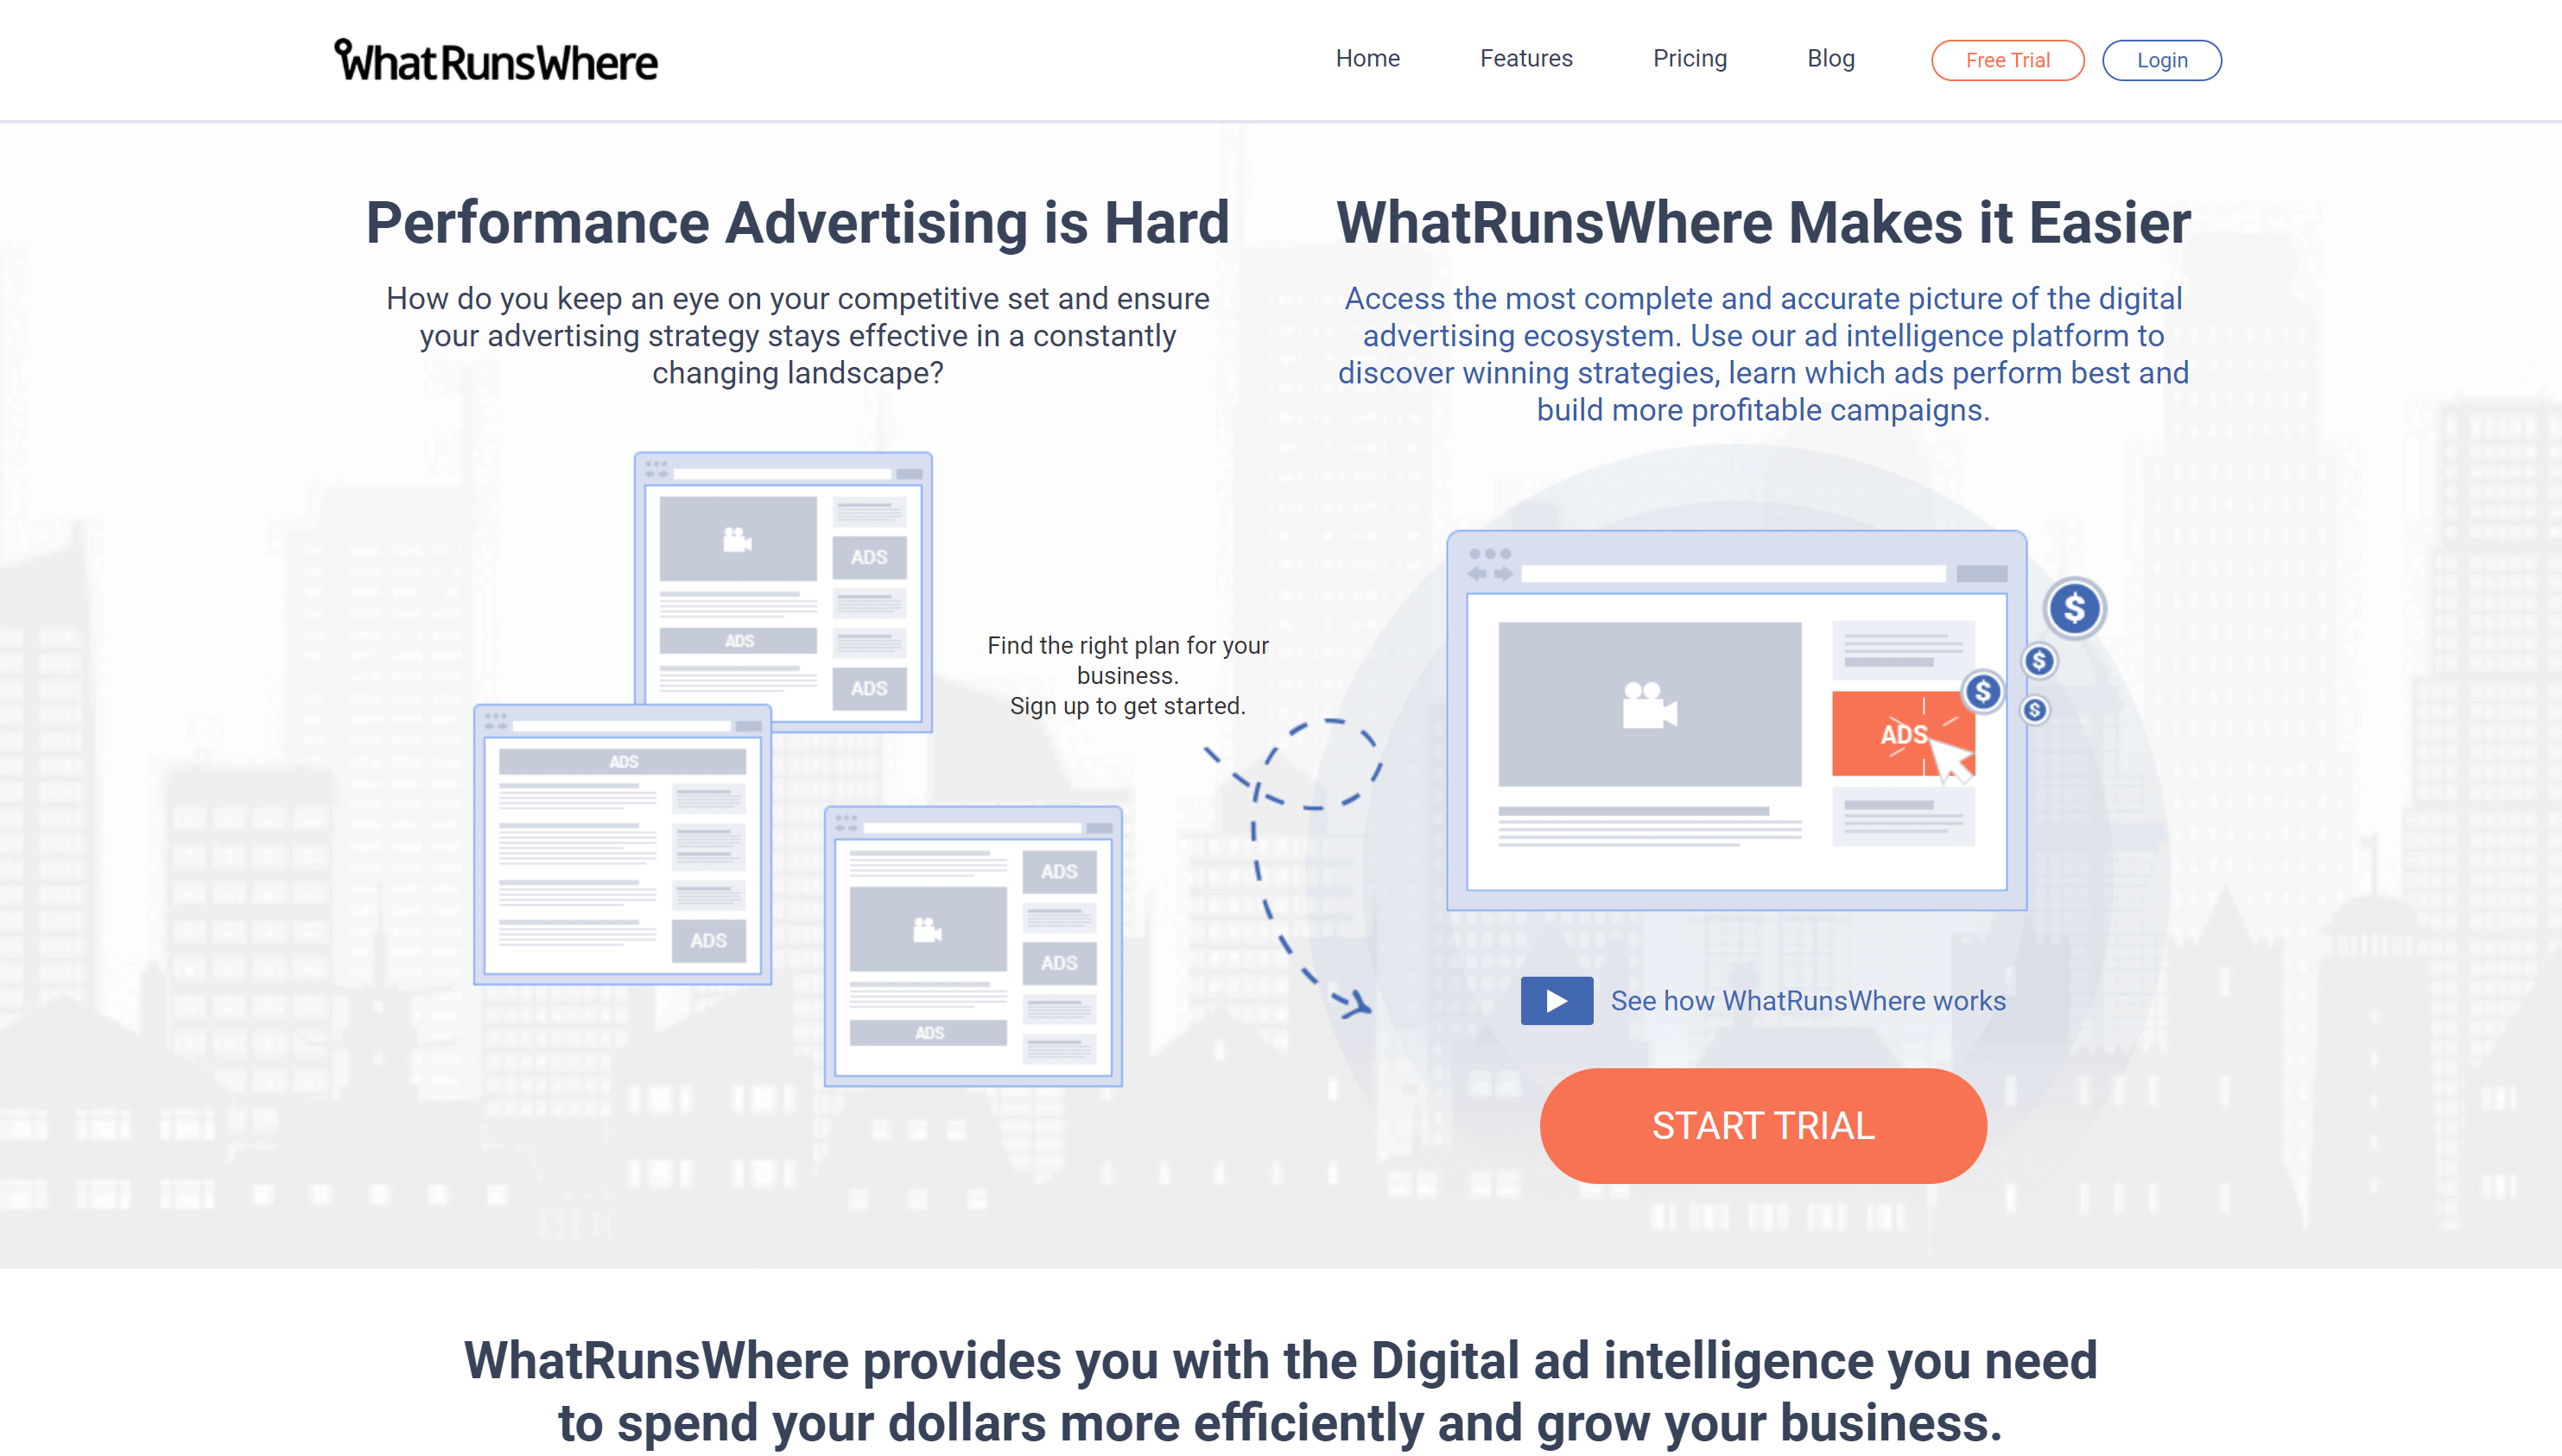 whatrunswhere ad intelligence tool- anstrex review alternatives